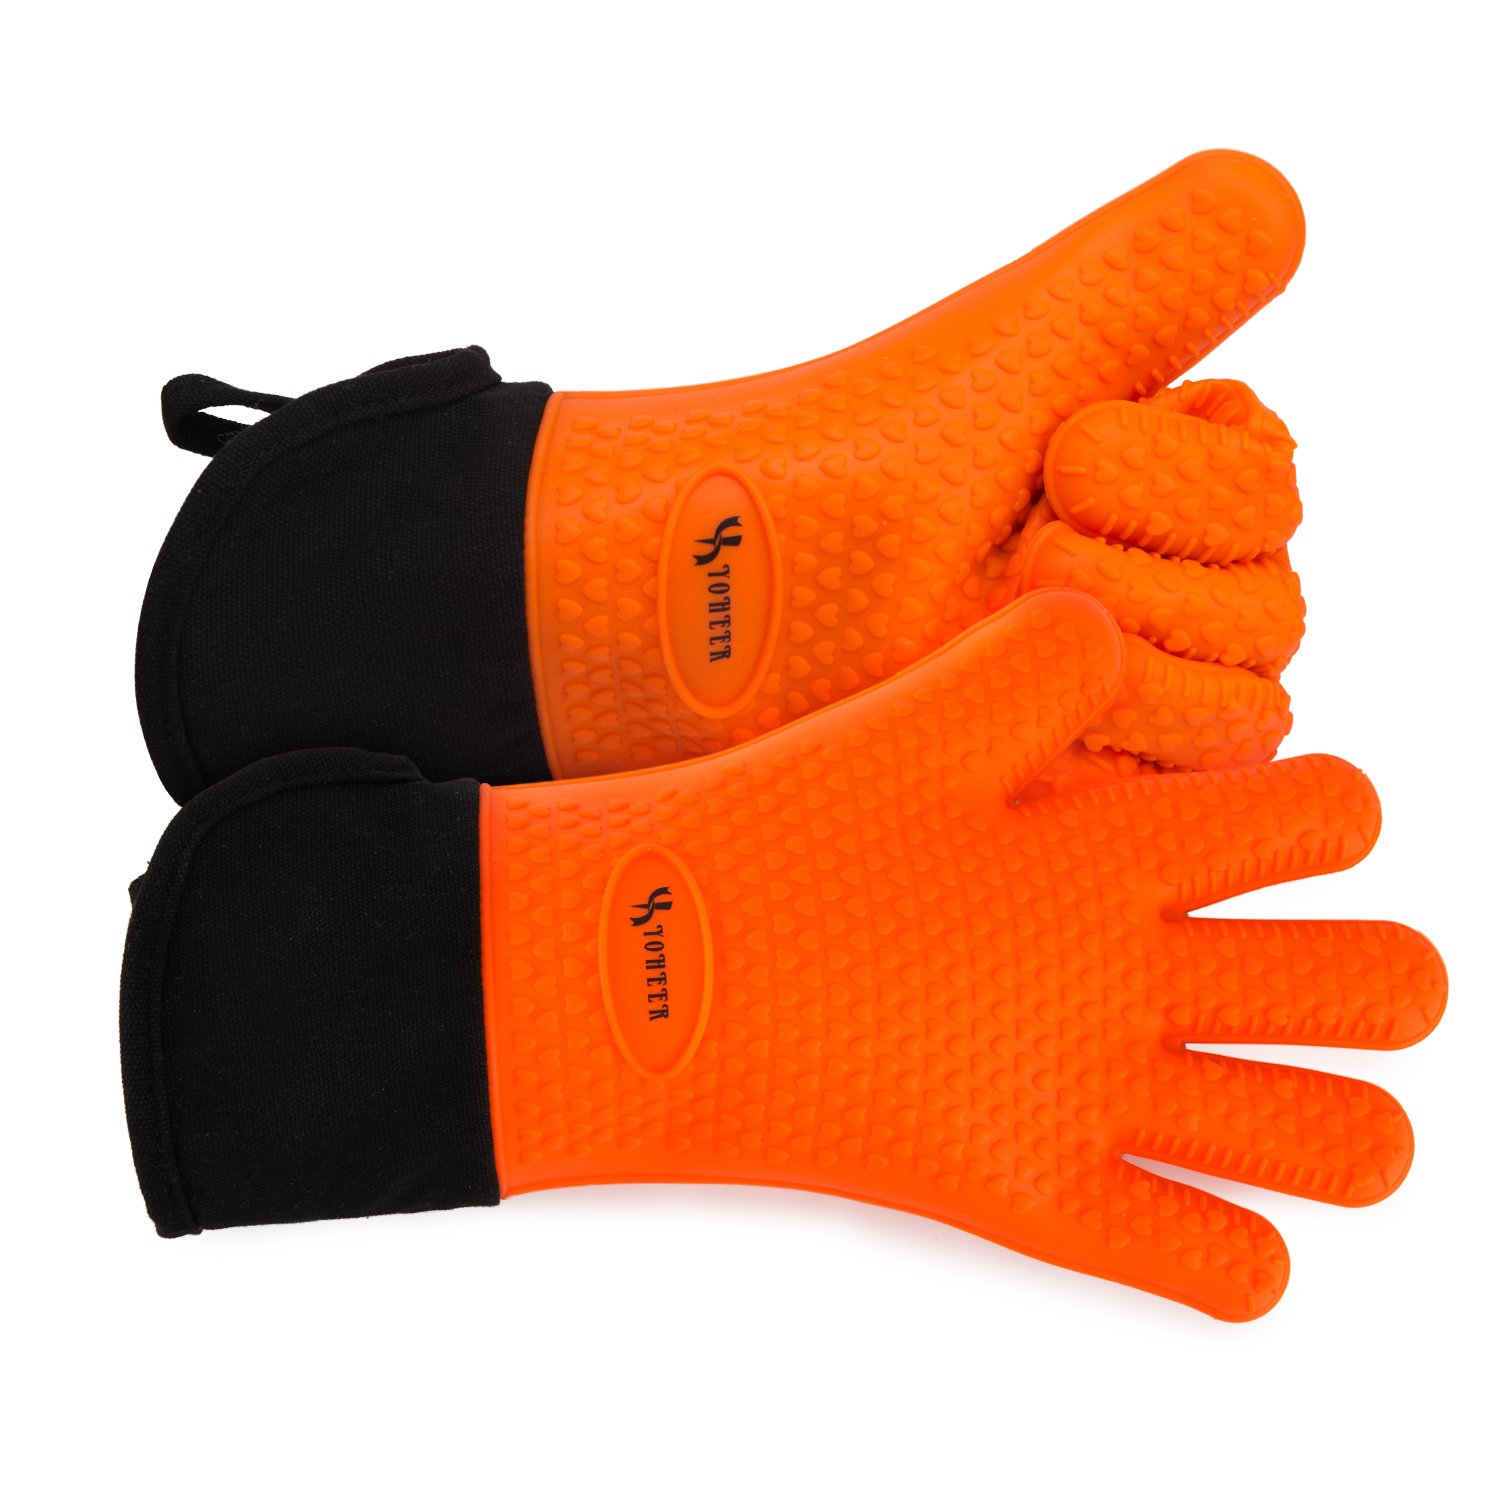 YOHEER Silicone Oven Mitts, Extra-Long Quilted Cotton Lining,Heat Resistant Kitchen Potholder Gloves for Oven,Outdoor BBQ Grill,Fireplace Camping,Kitchen and so on.- 1 Pair (Orange) by YOHEER